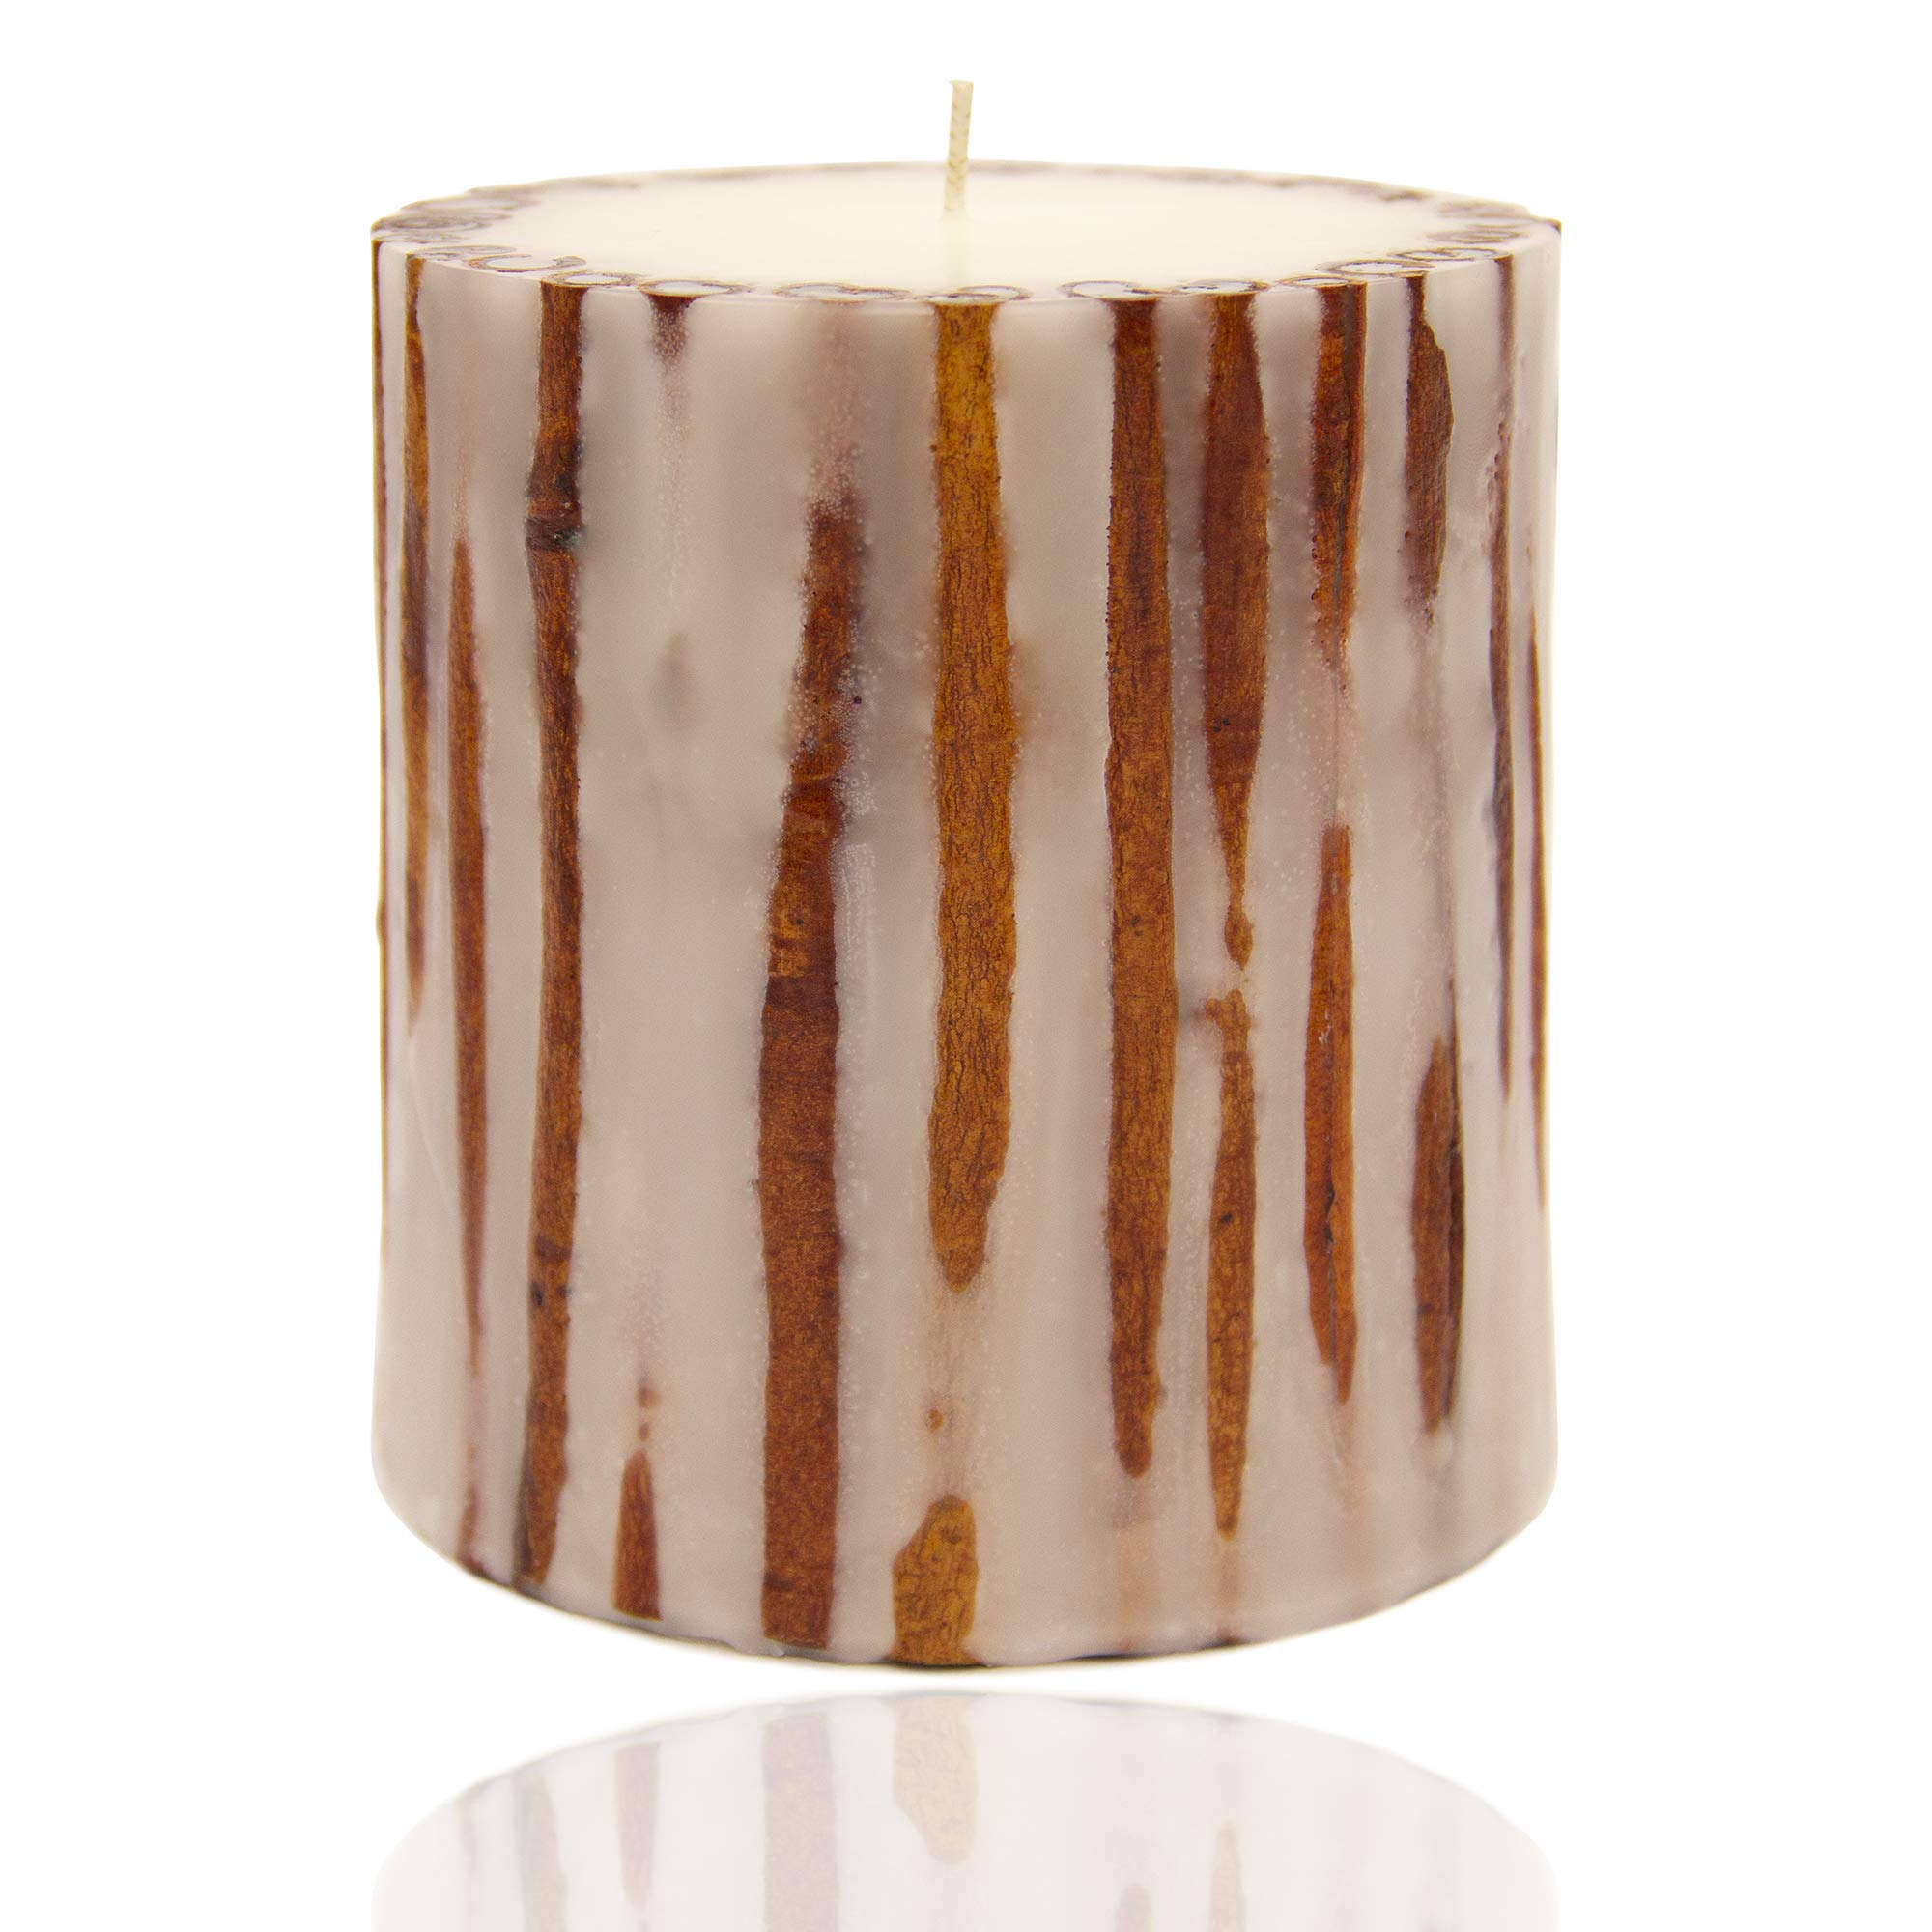 Andaluca Cinnamon Botanical Candle | 5 x 5 inch | Handmade in USA | 100+ Hours Scented Burn by Andaluca